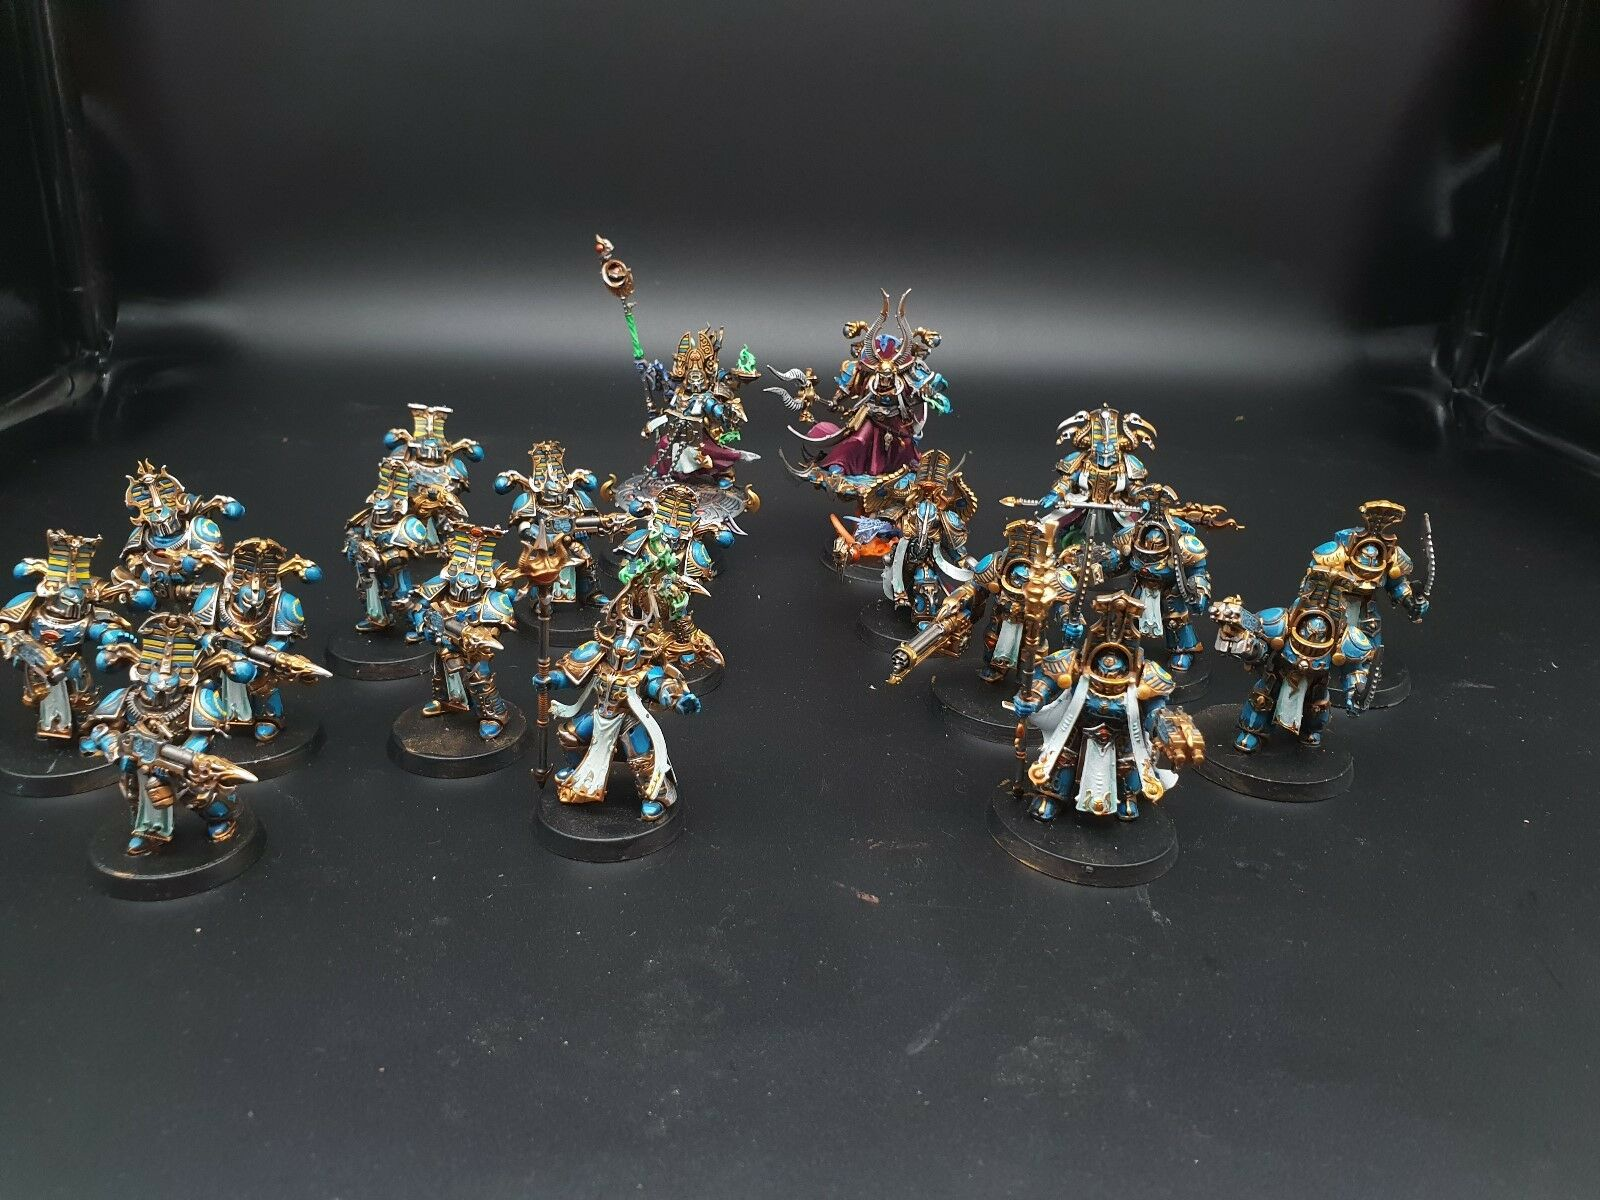 Warhammer THOUSAND SONS SPACE MARINE ARMY Pro Painted Made To Order